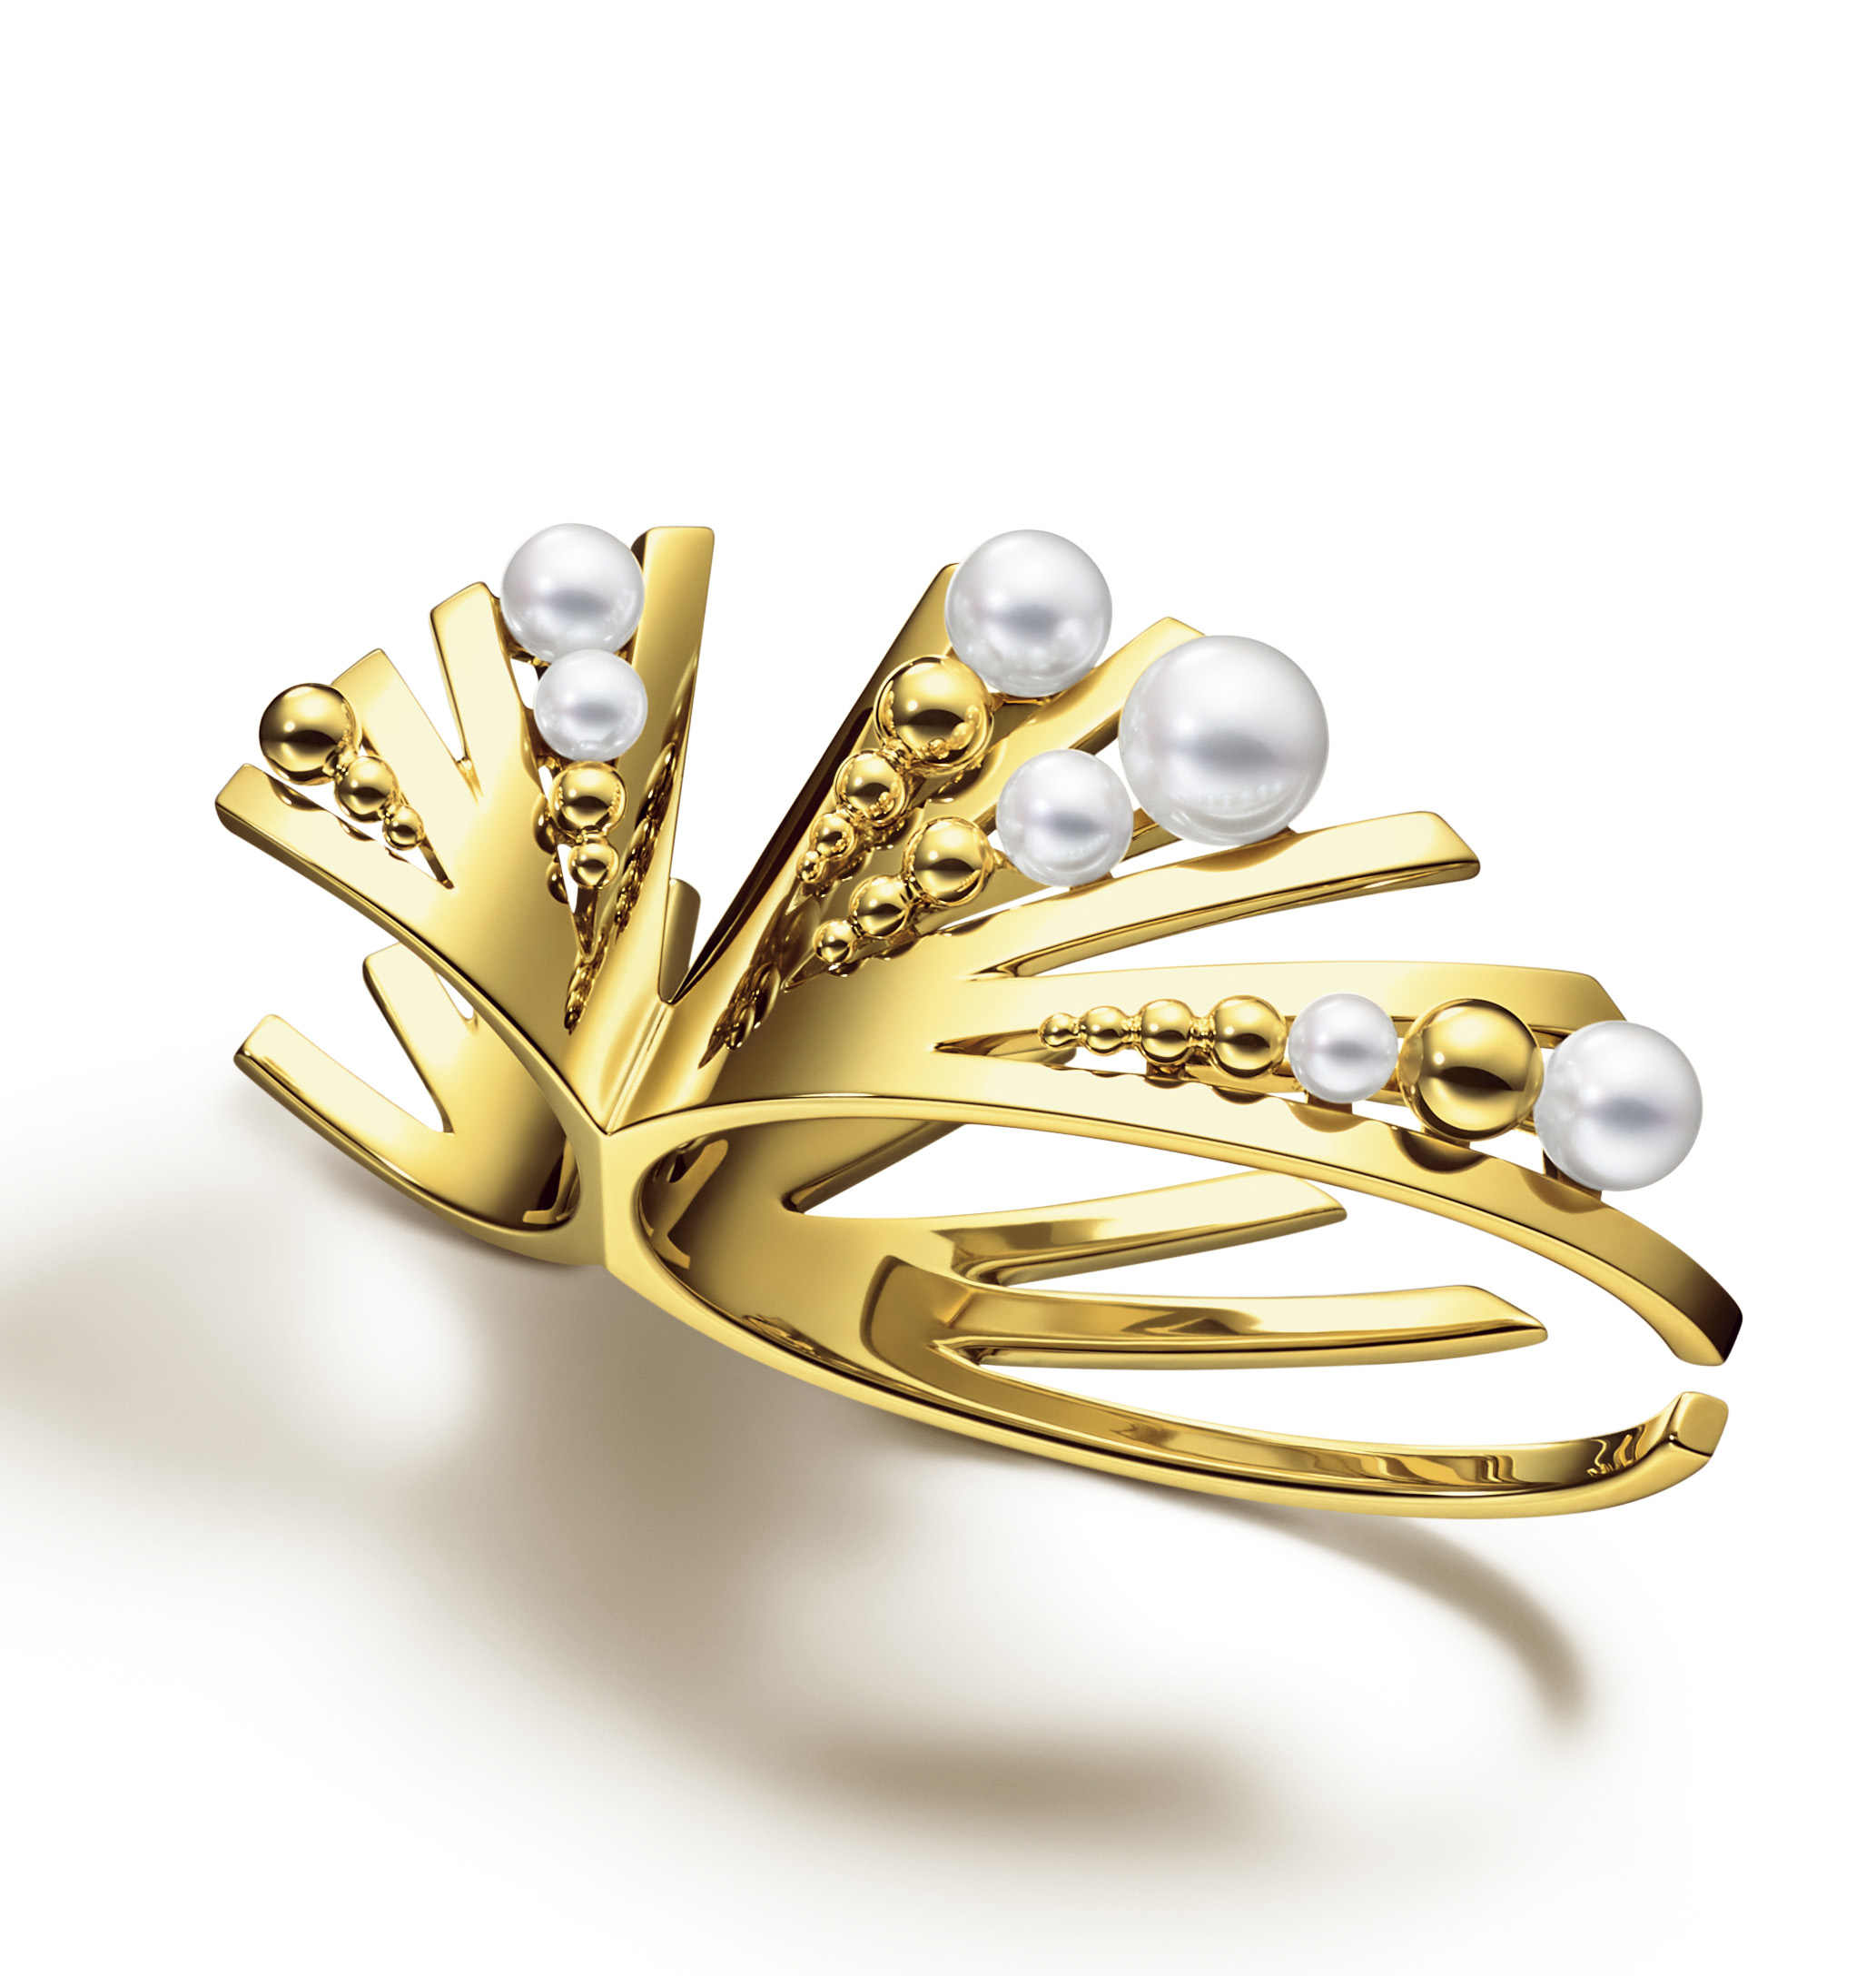 Grain Double Ring M/G Tasaki (Image Courtesy of Melanie Georgacopoulos)